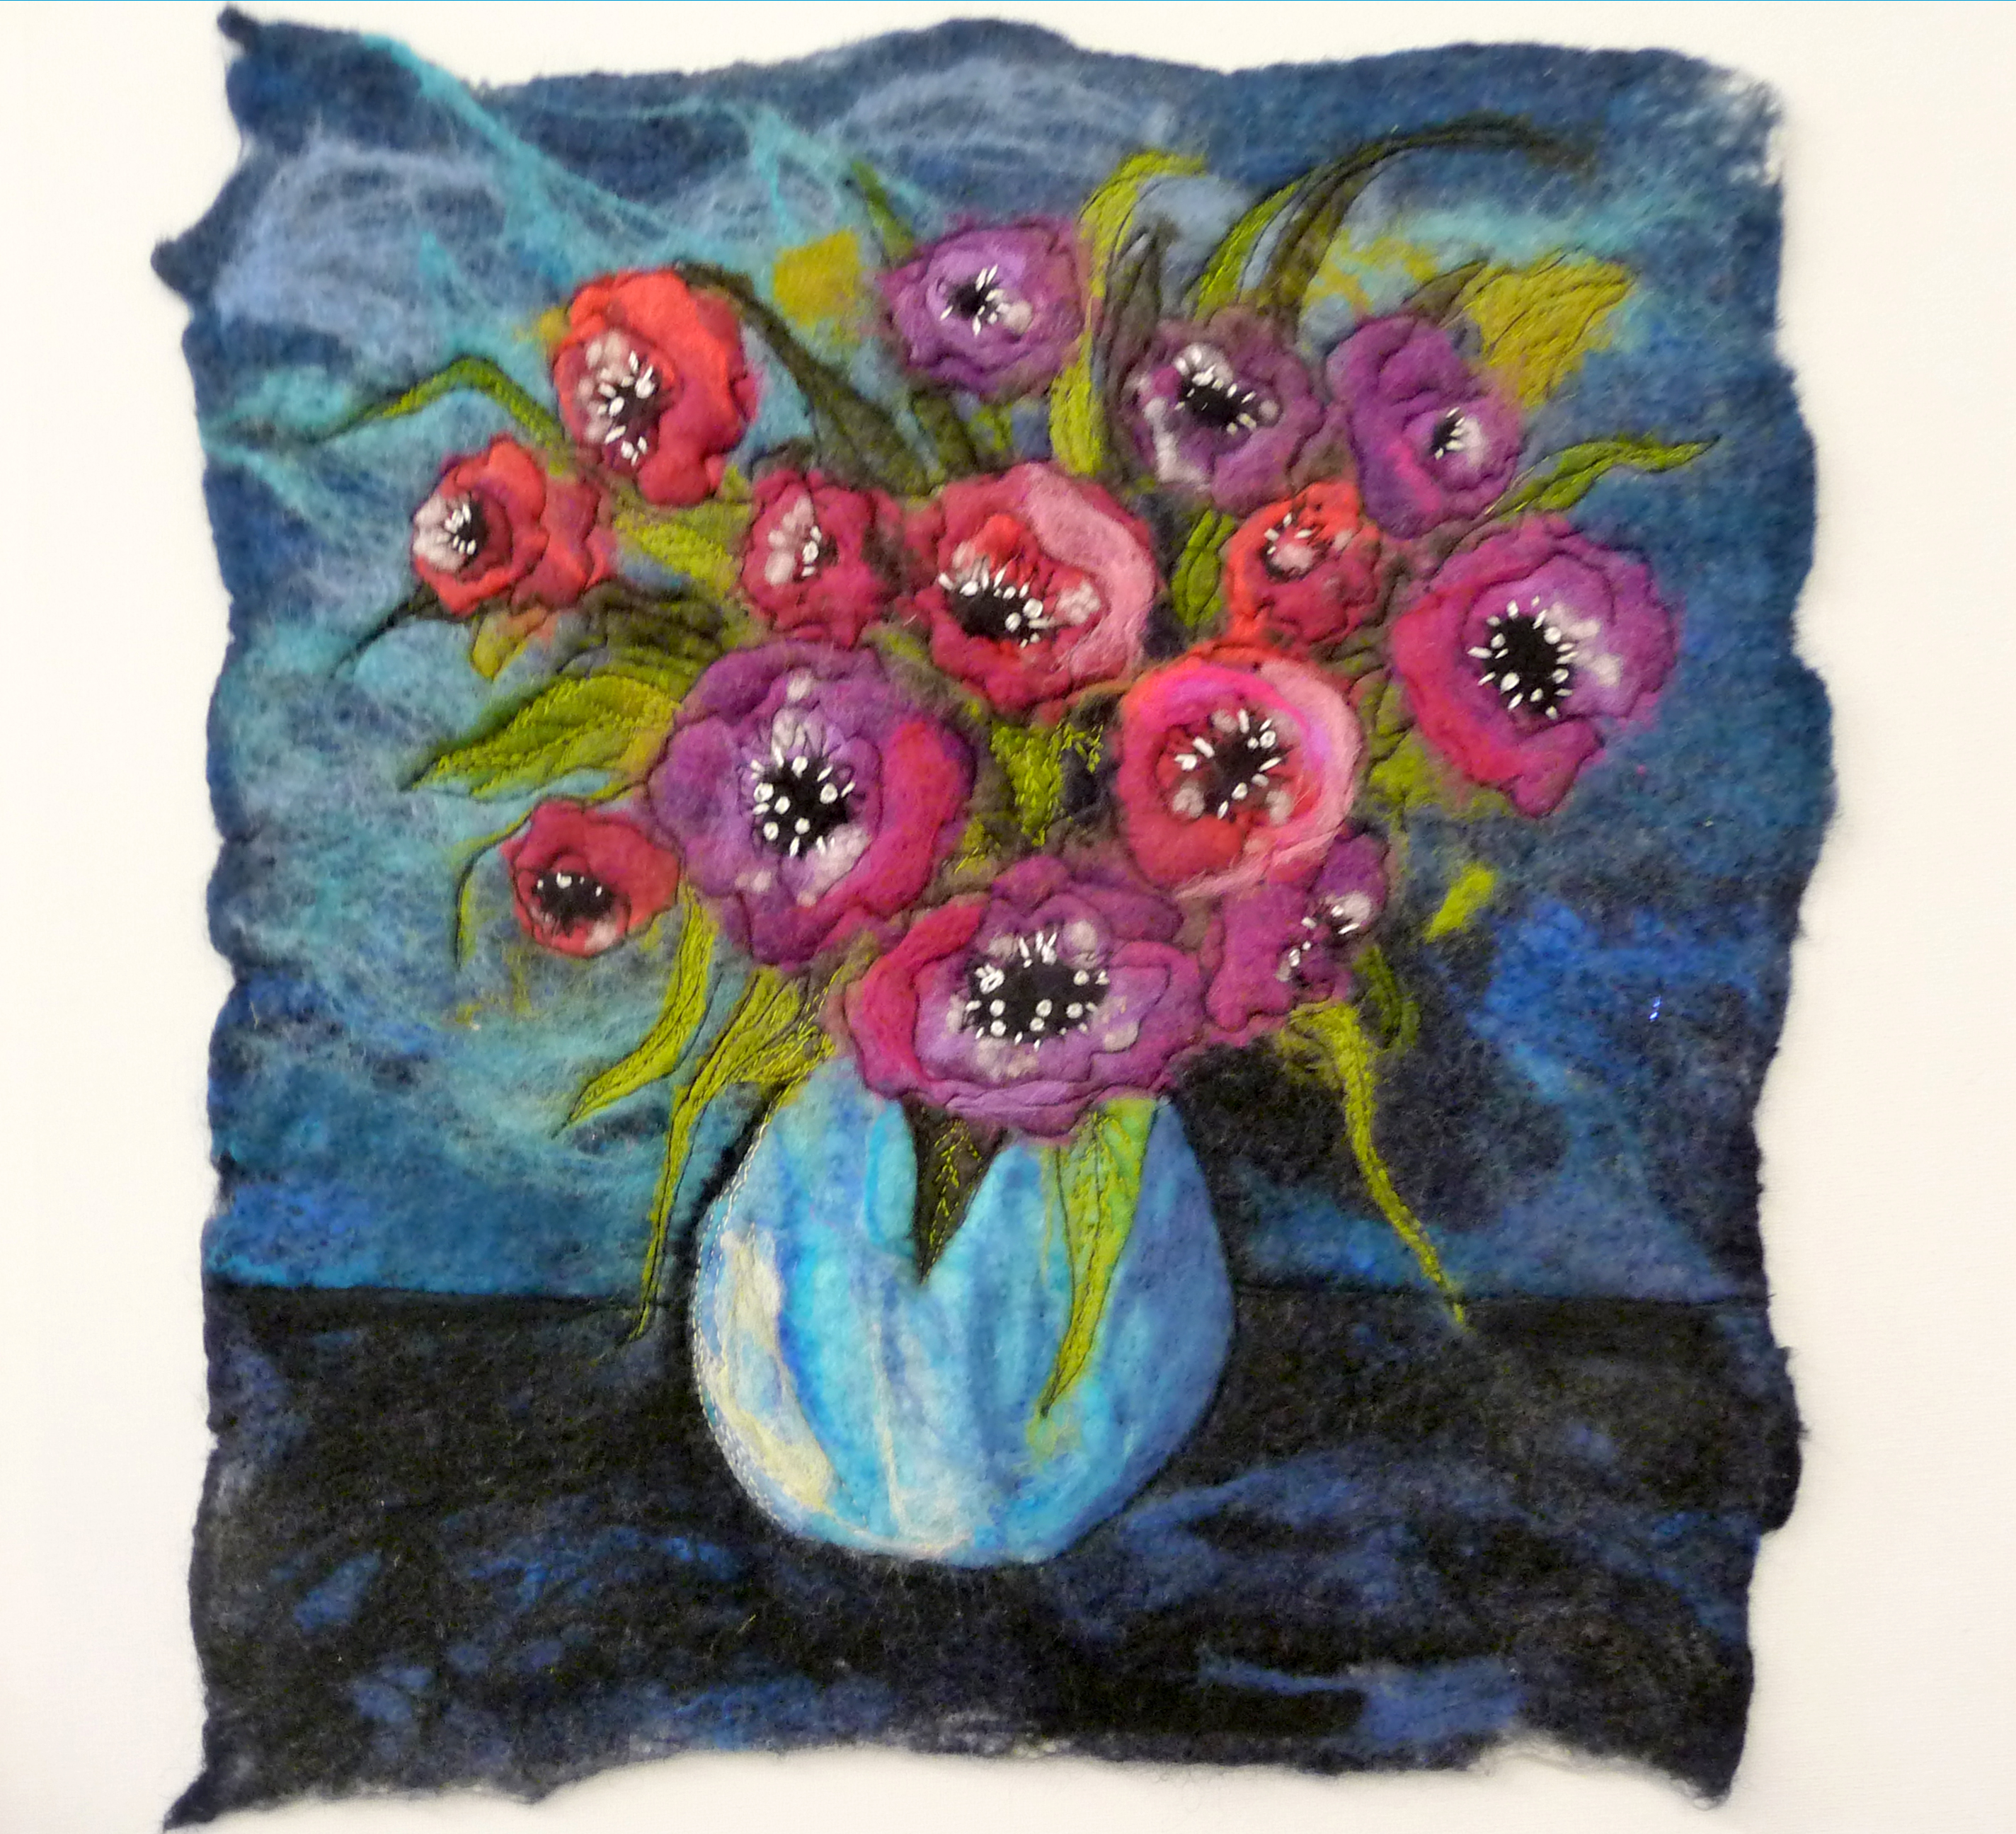 SAY IT WITH FLOWERS by Sue Sercombe